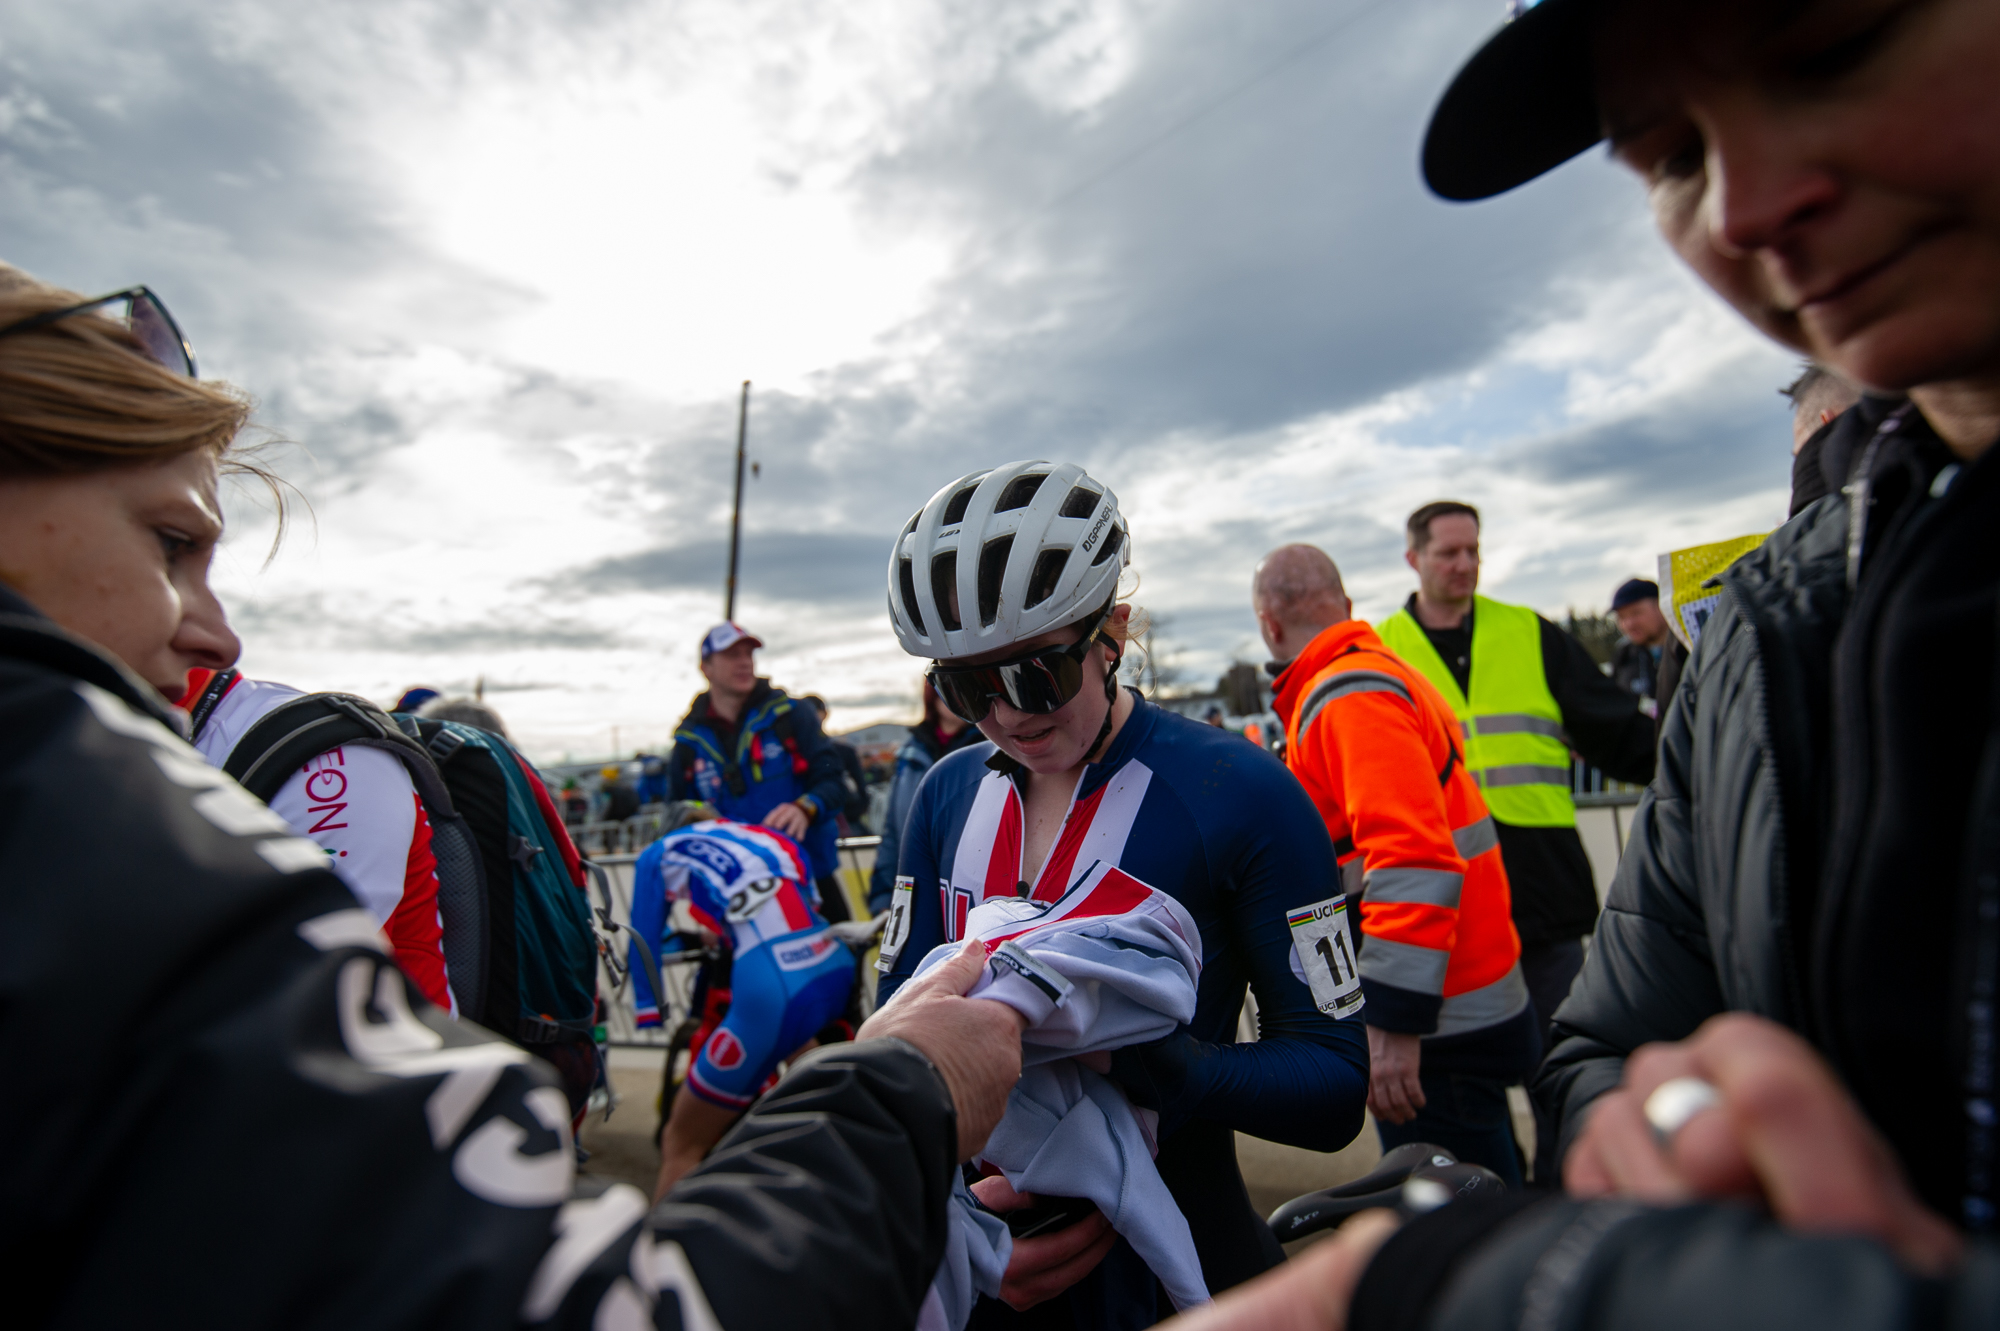 Bridget Tooley at the UCI Cyclocross World Championships